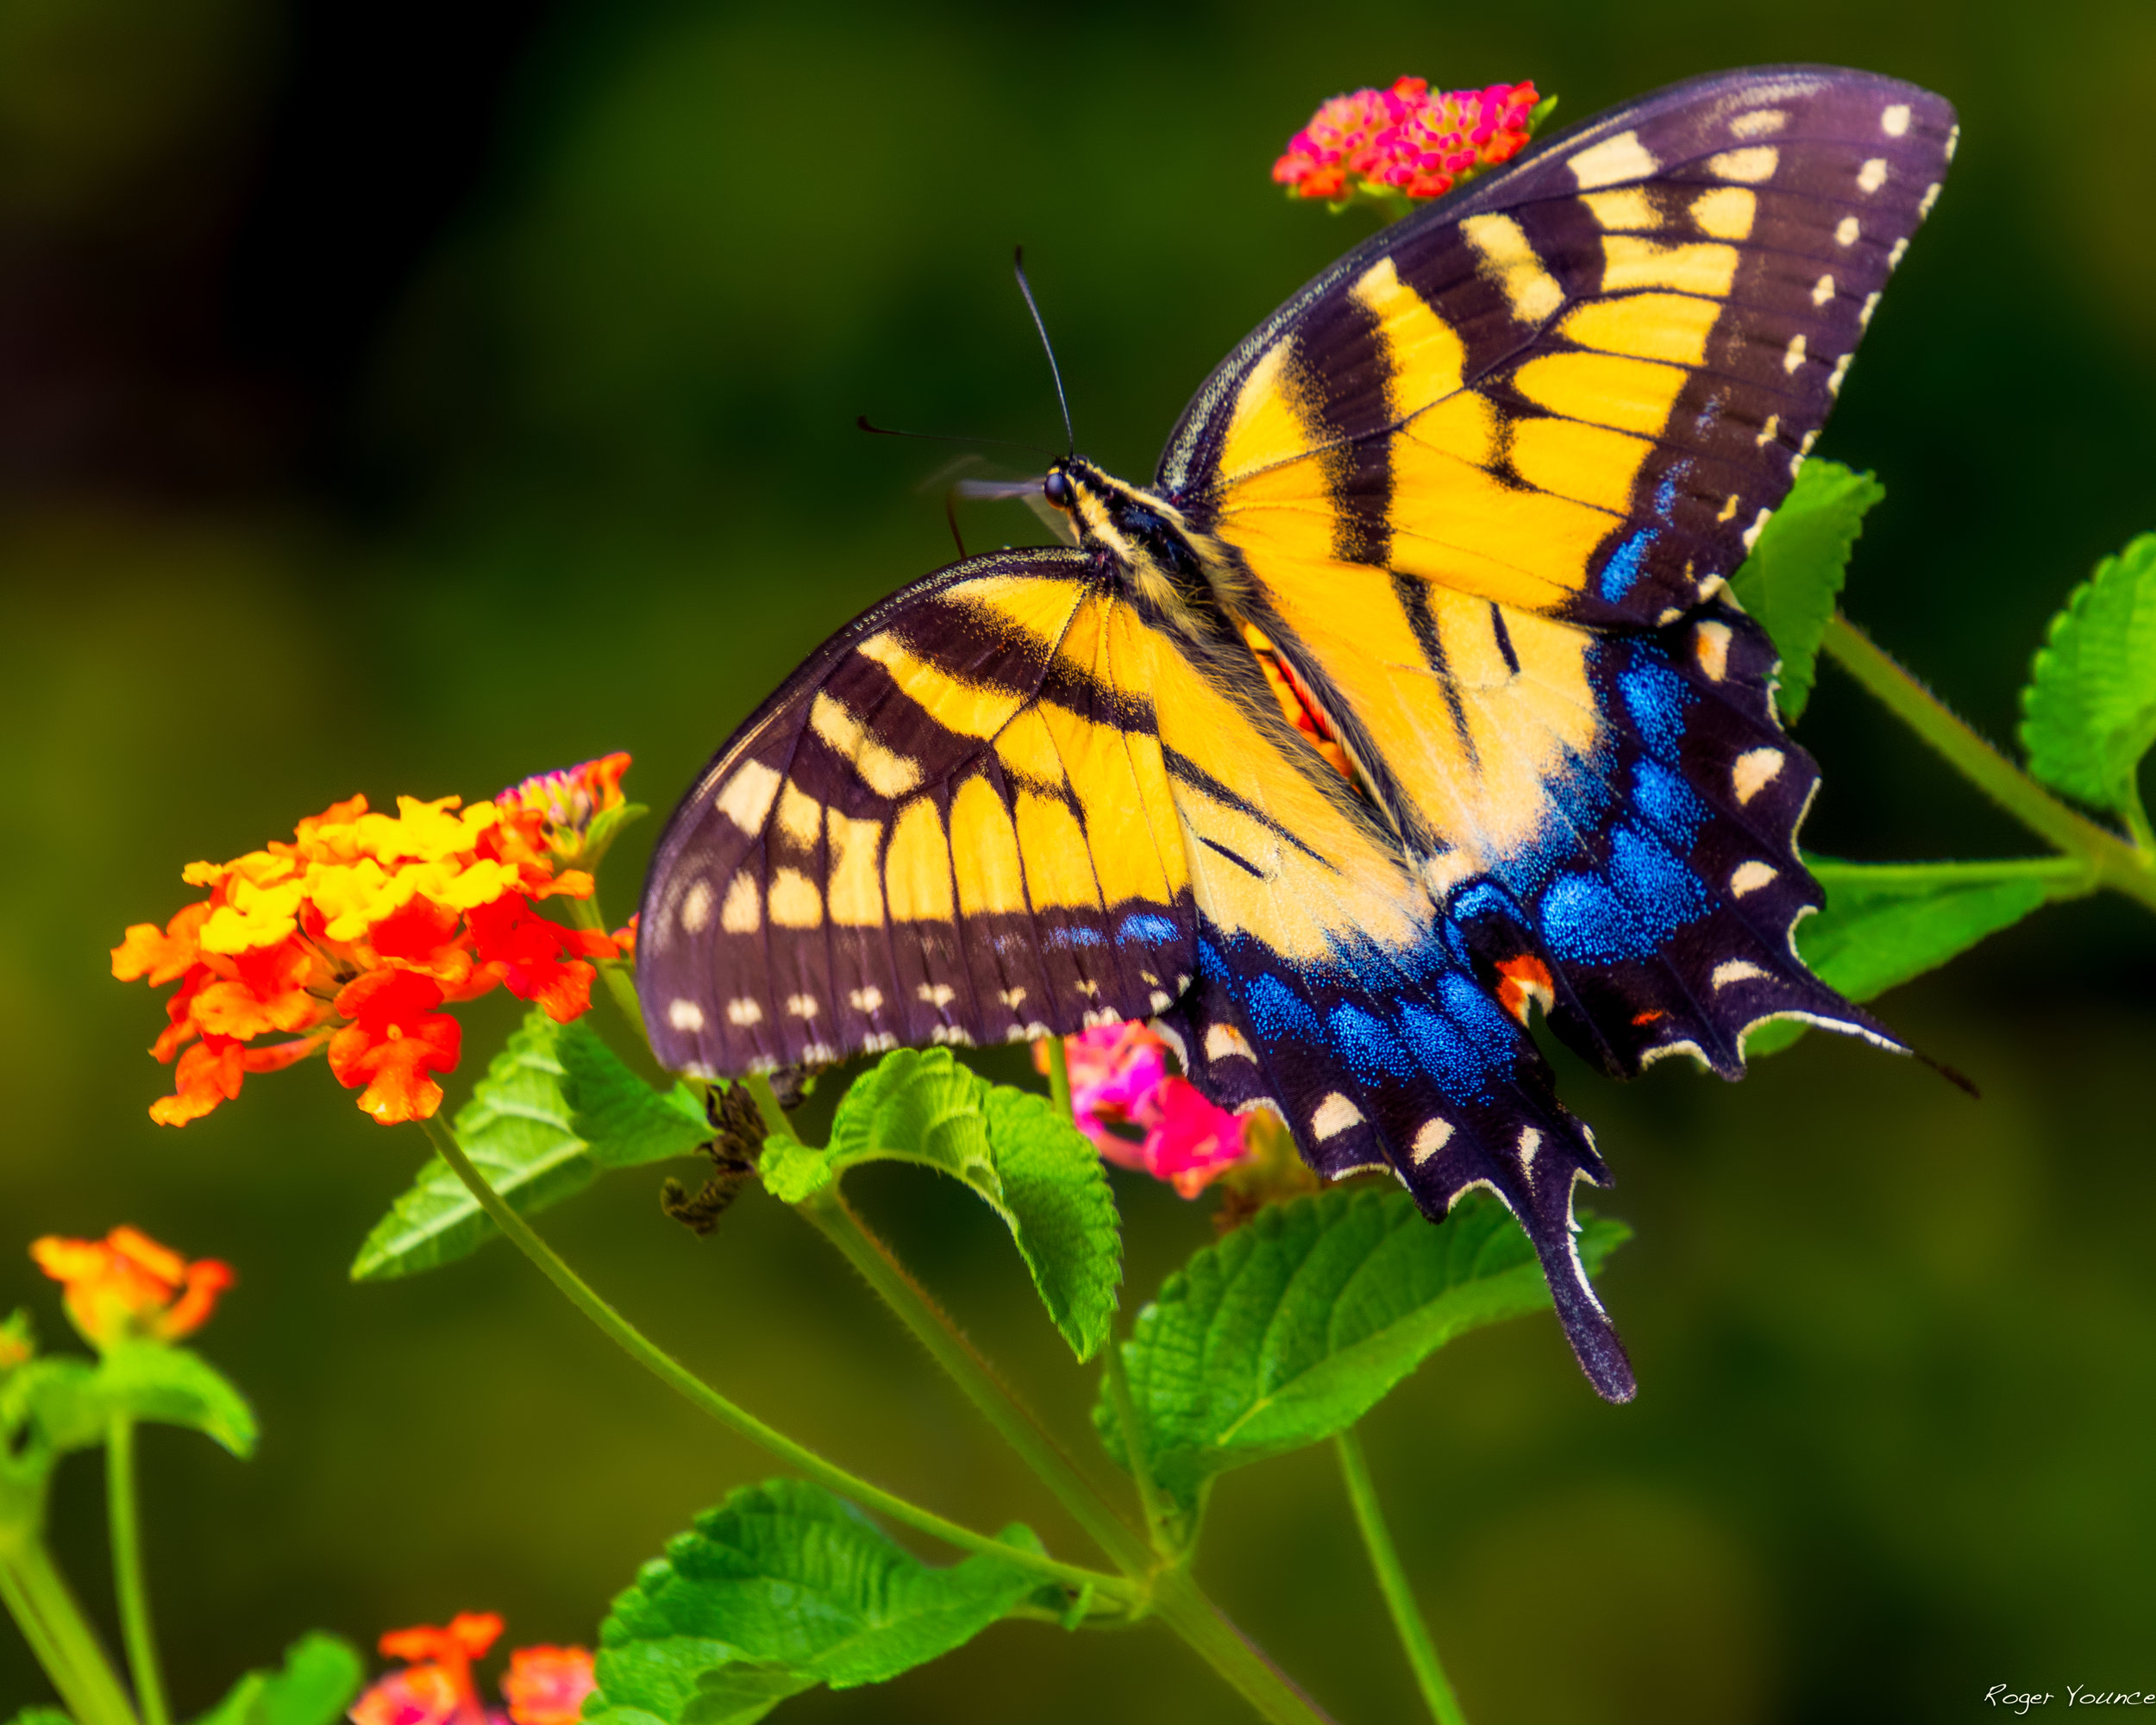 butterfly-metal-print-nature-color-photo-photography-roger-younce-northcarolina